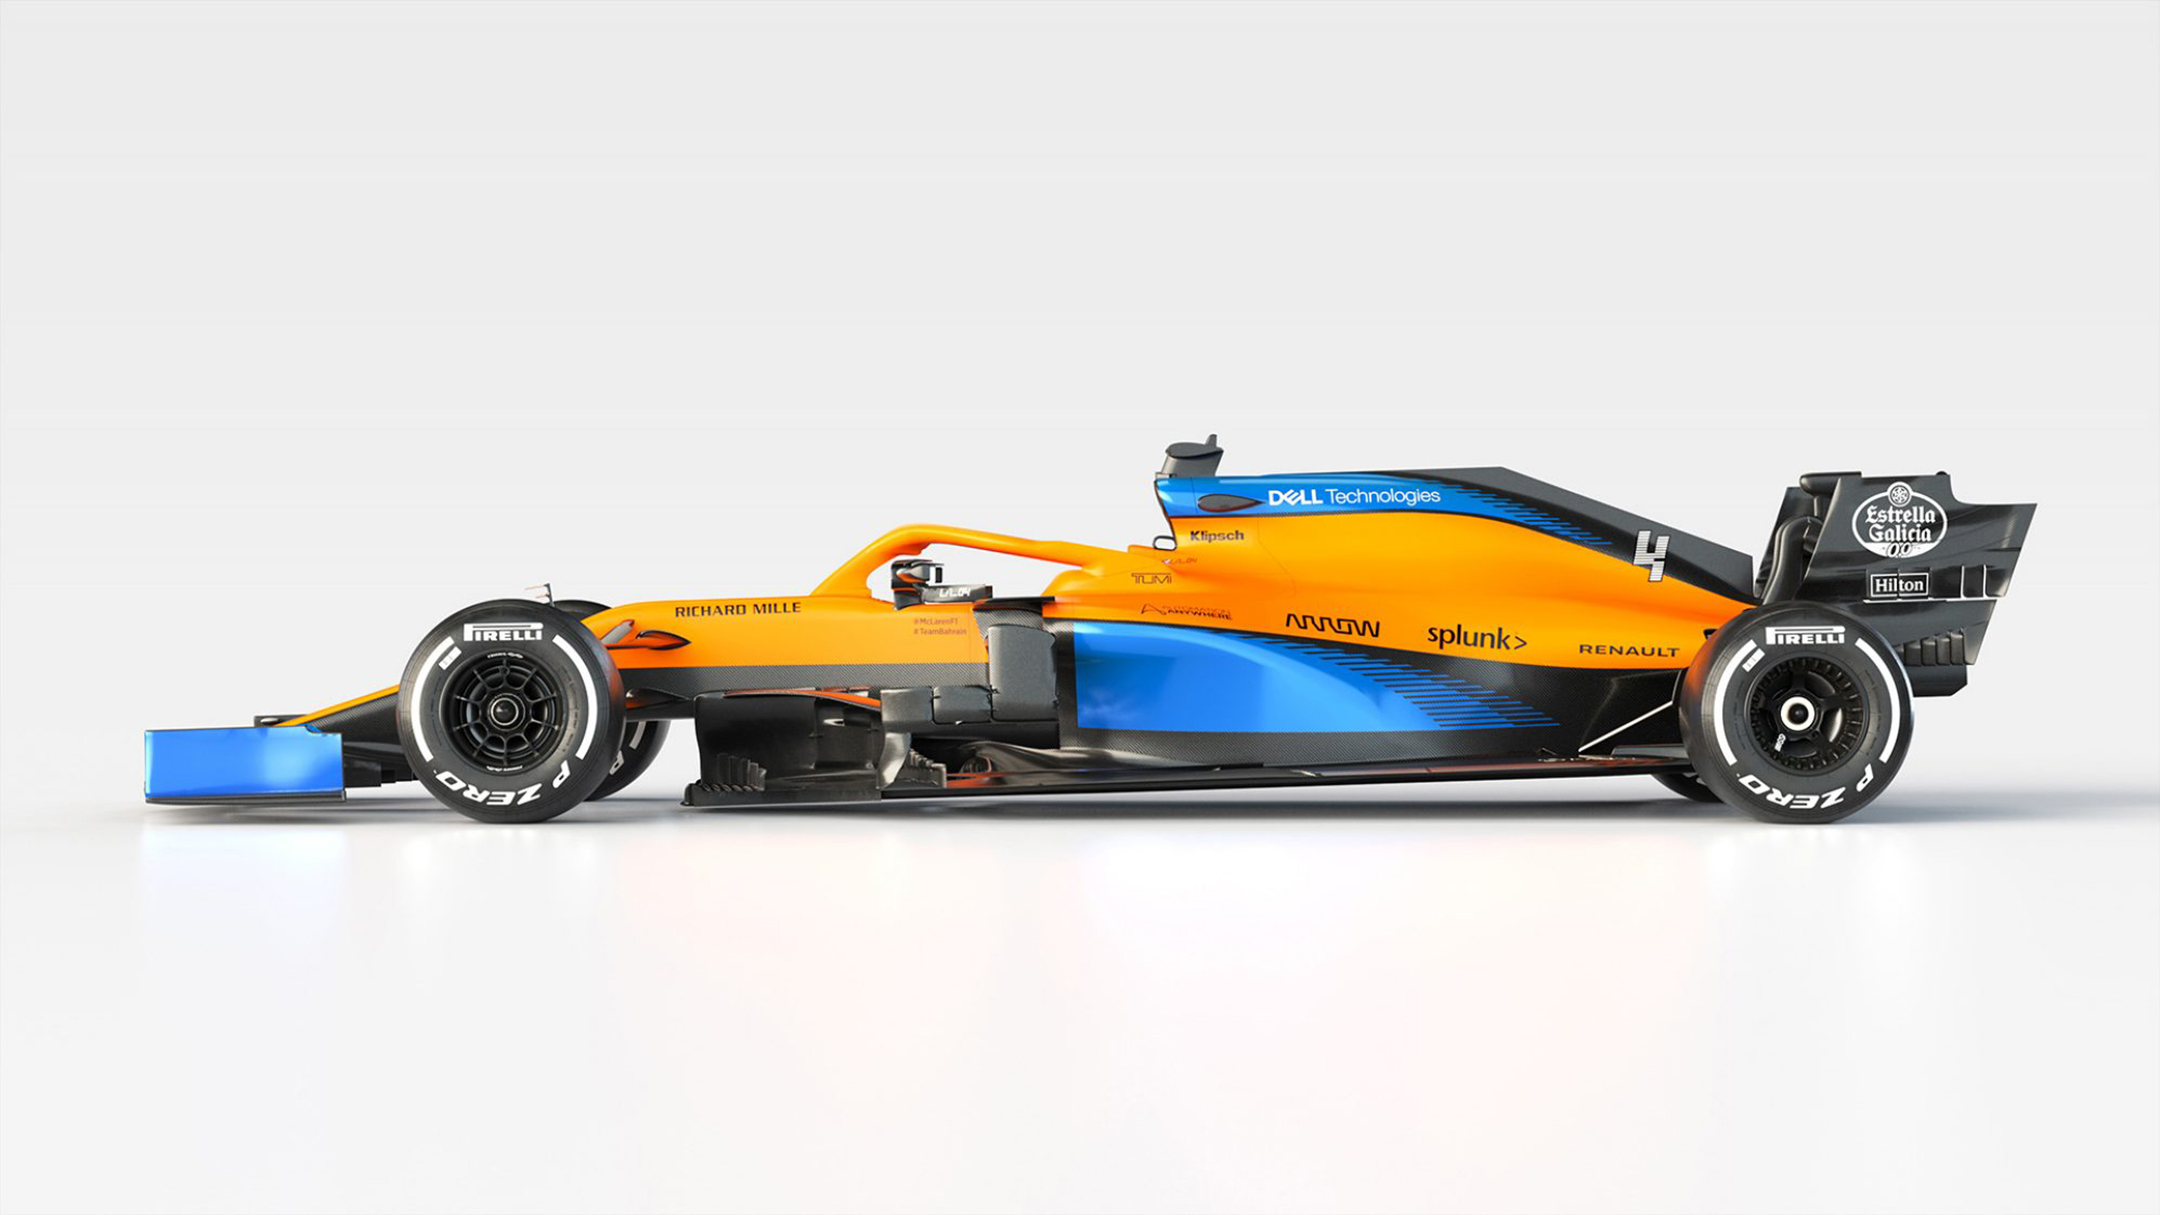 F1 - McLaren Racing - MCL35 - 2020 - side-face - Renault E-Tech 20 - 35A engine - McLaren Applied Technologies